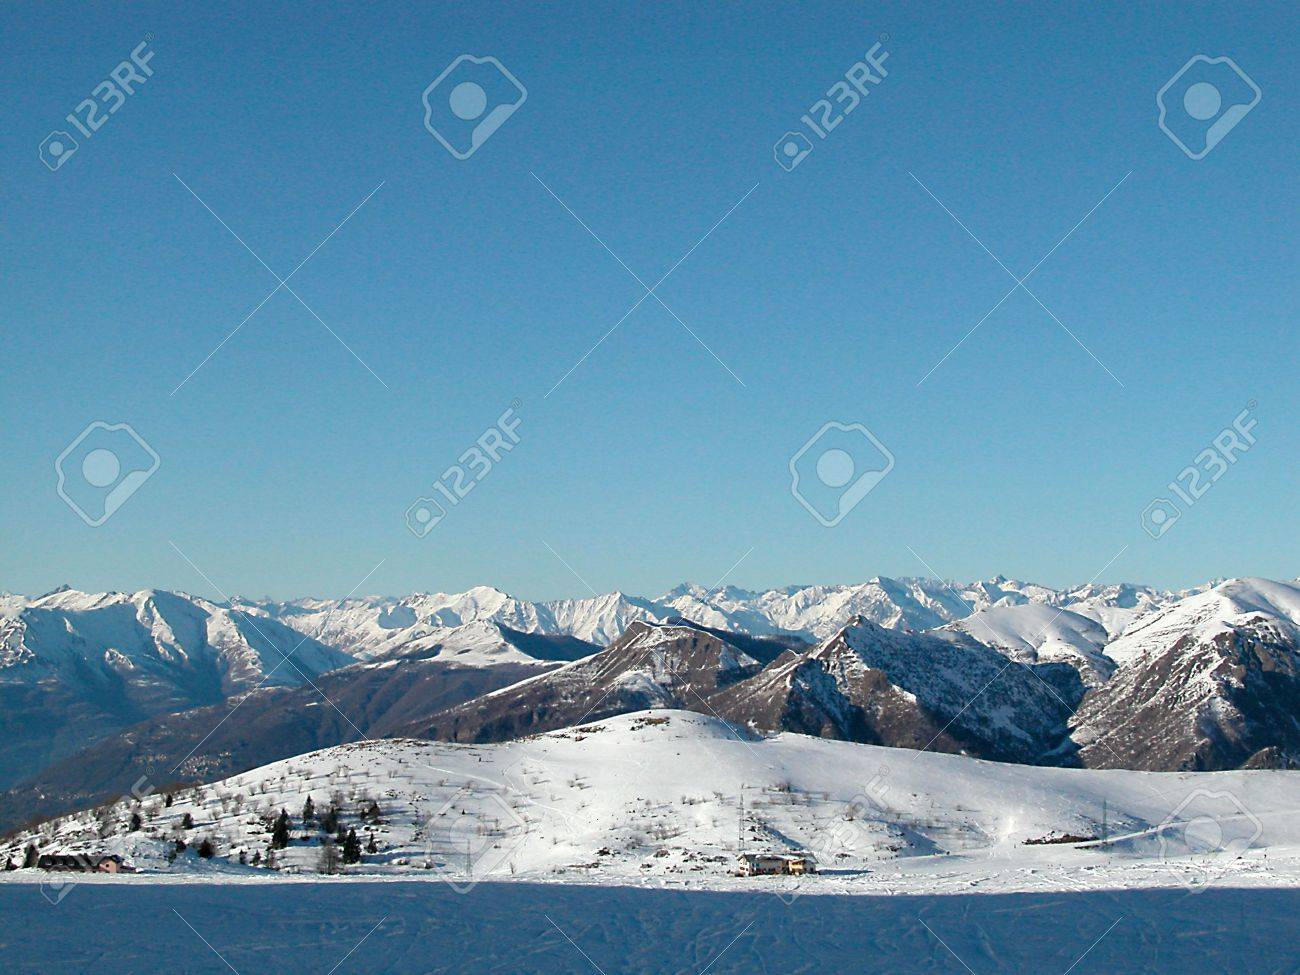 Panoramic view of Alps mountains covered of snow in wintertime, Italy Stock Photo - 4905478